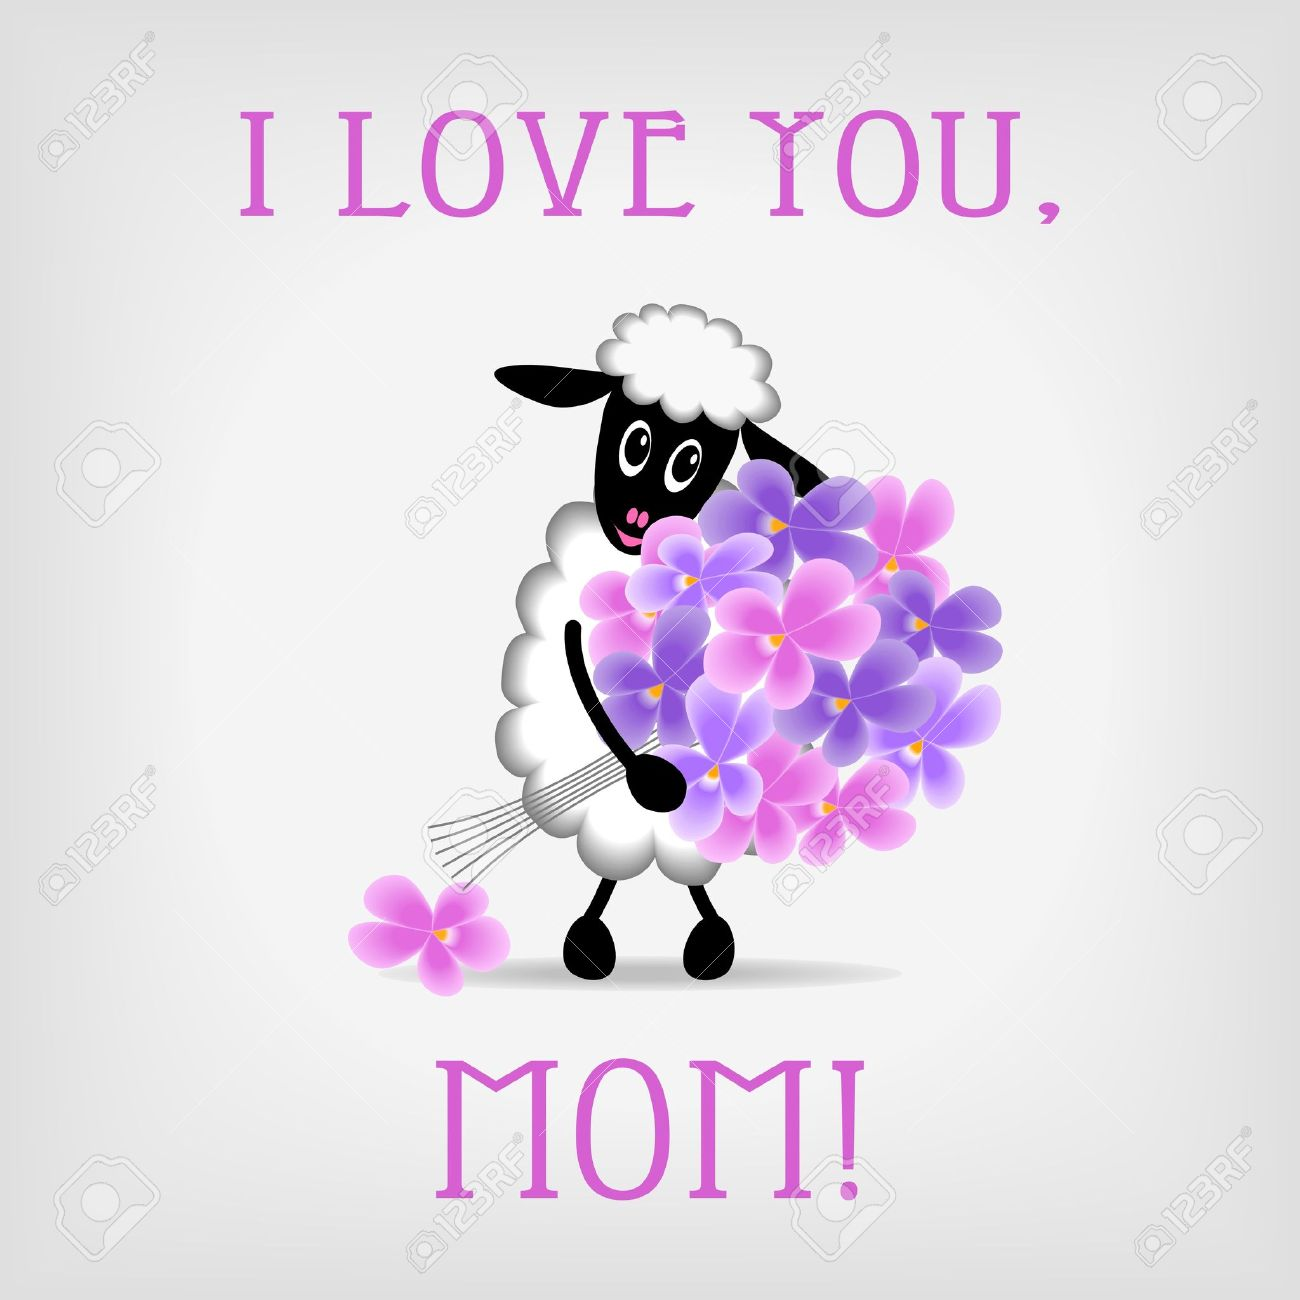 cute sheep holding bunch of violet flowers on gray background, with text I love you, Mom  - vector illustration Stock Vector - 12483608